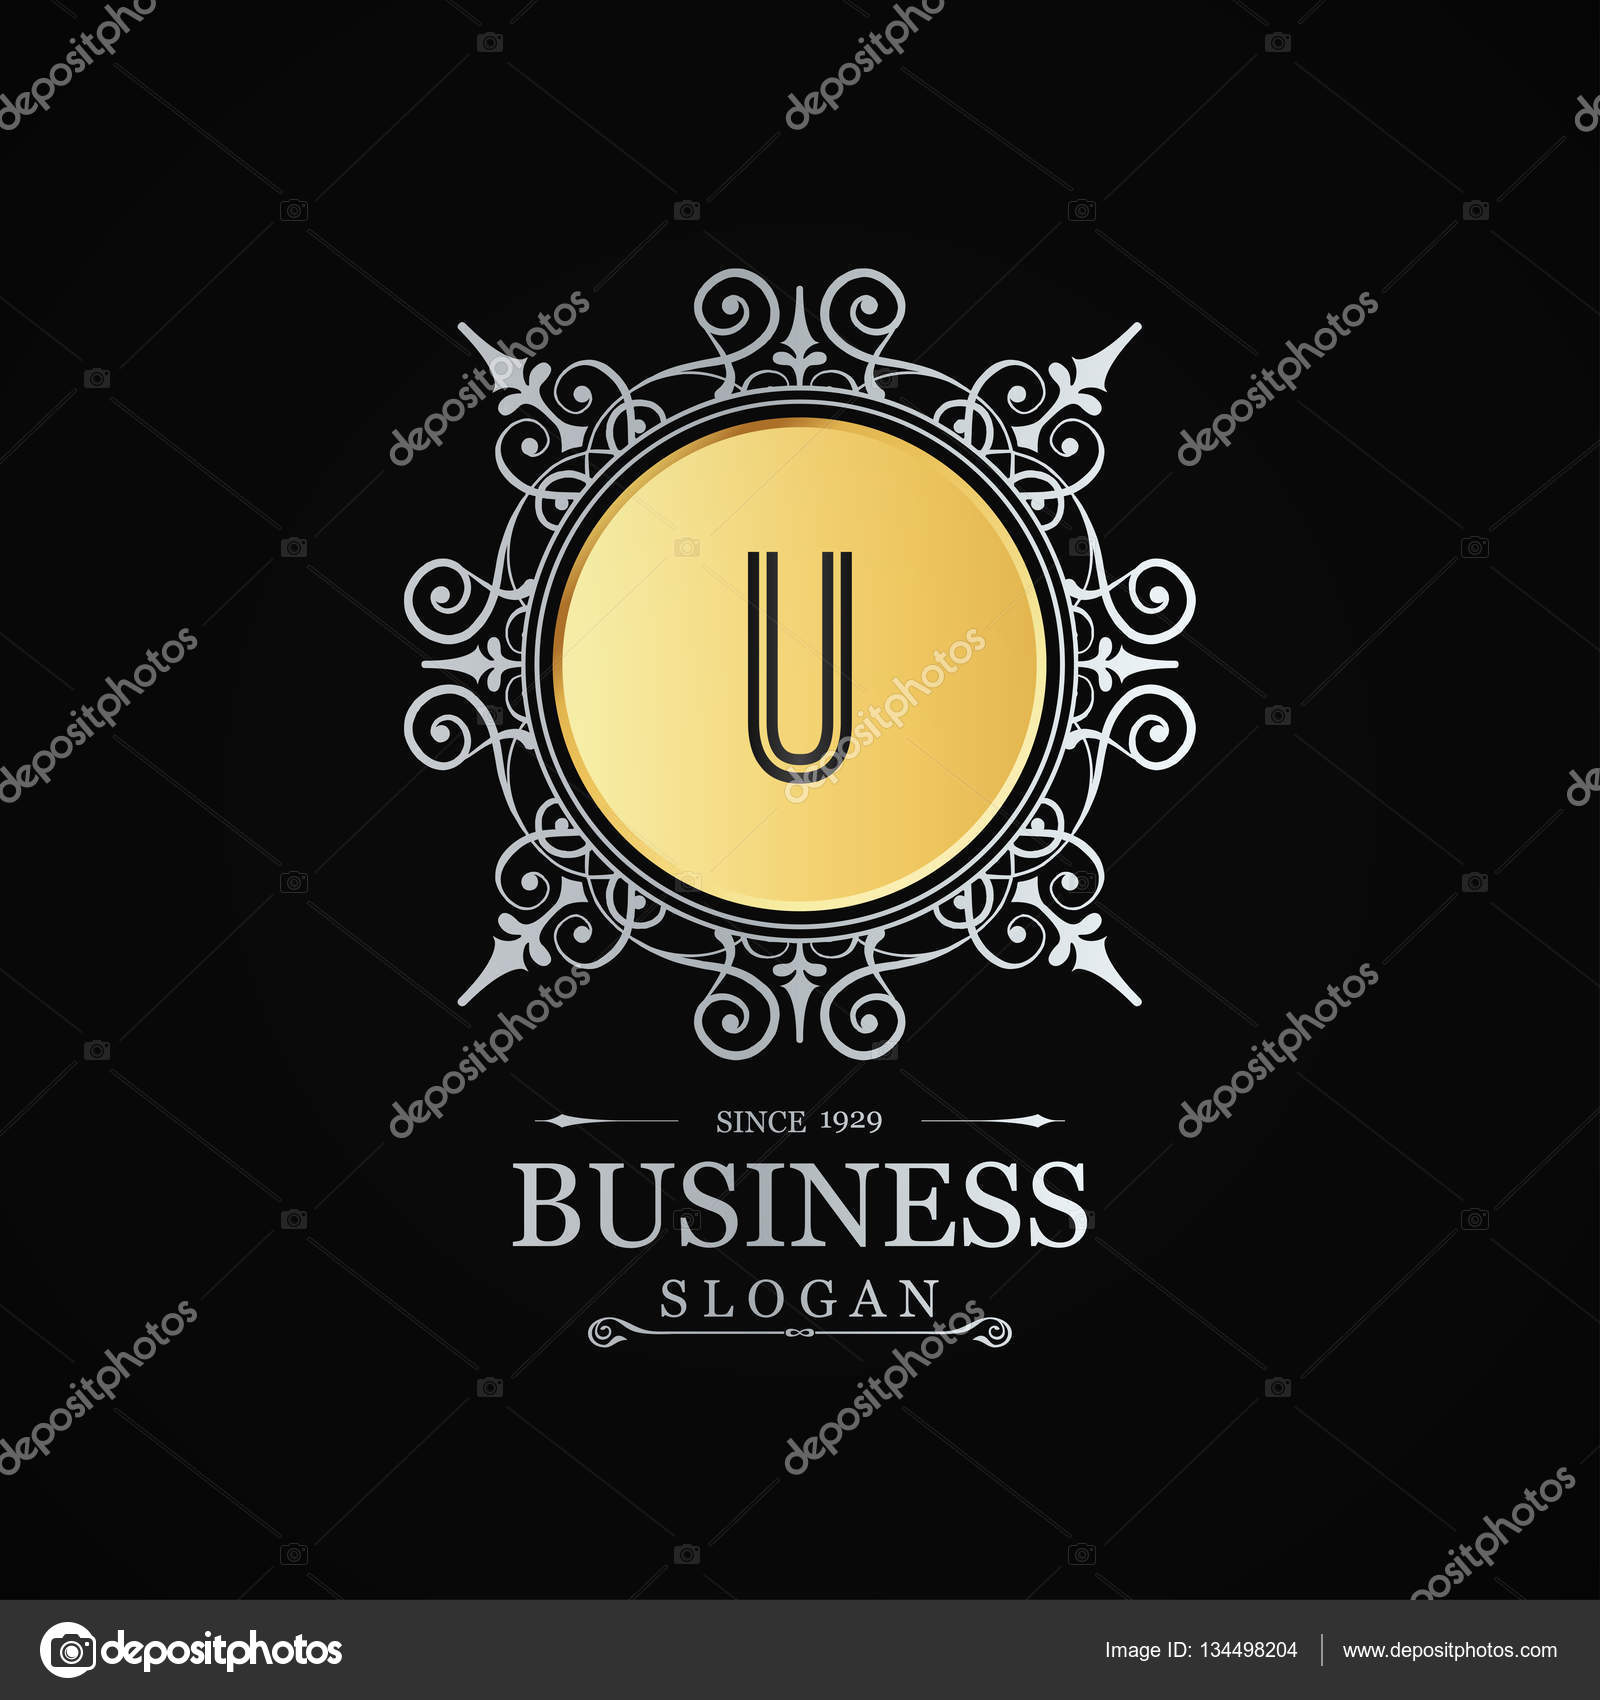 Business Logos on FlamingTextcom